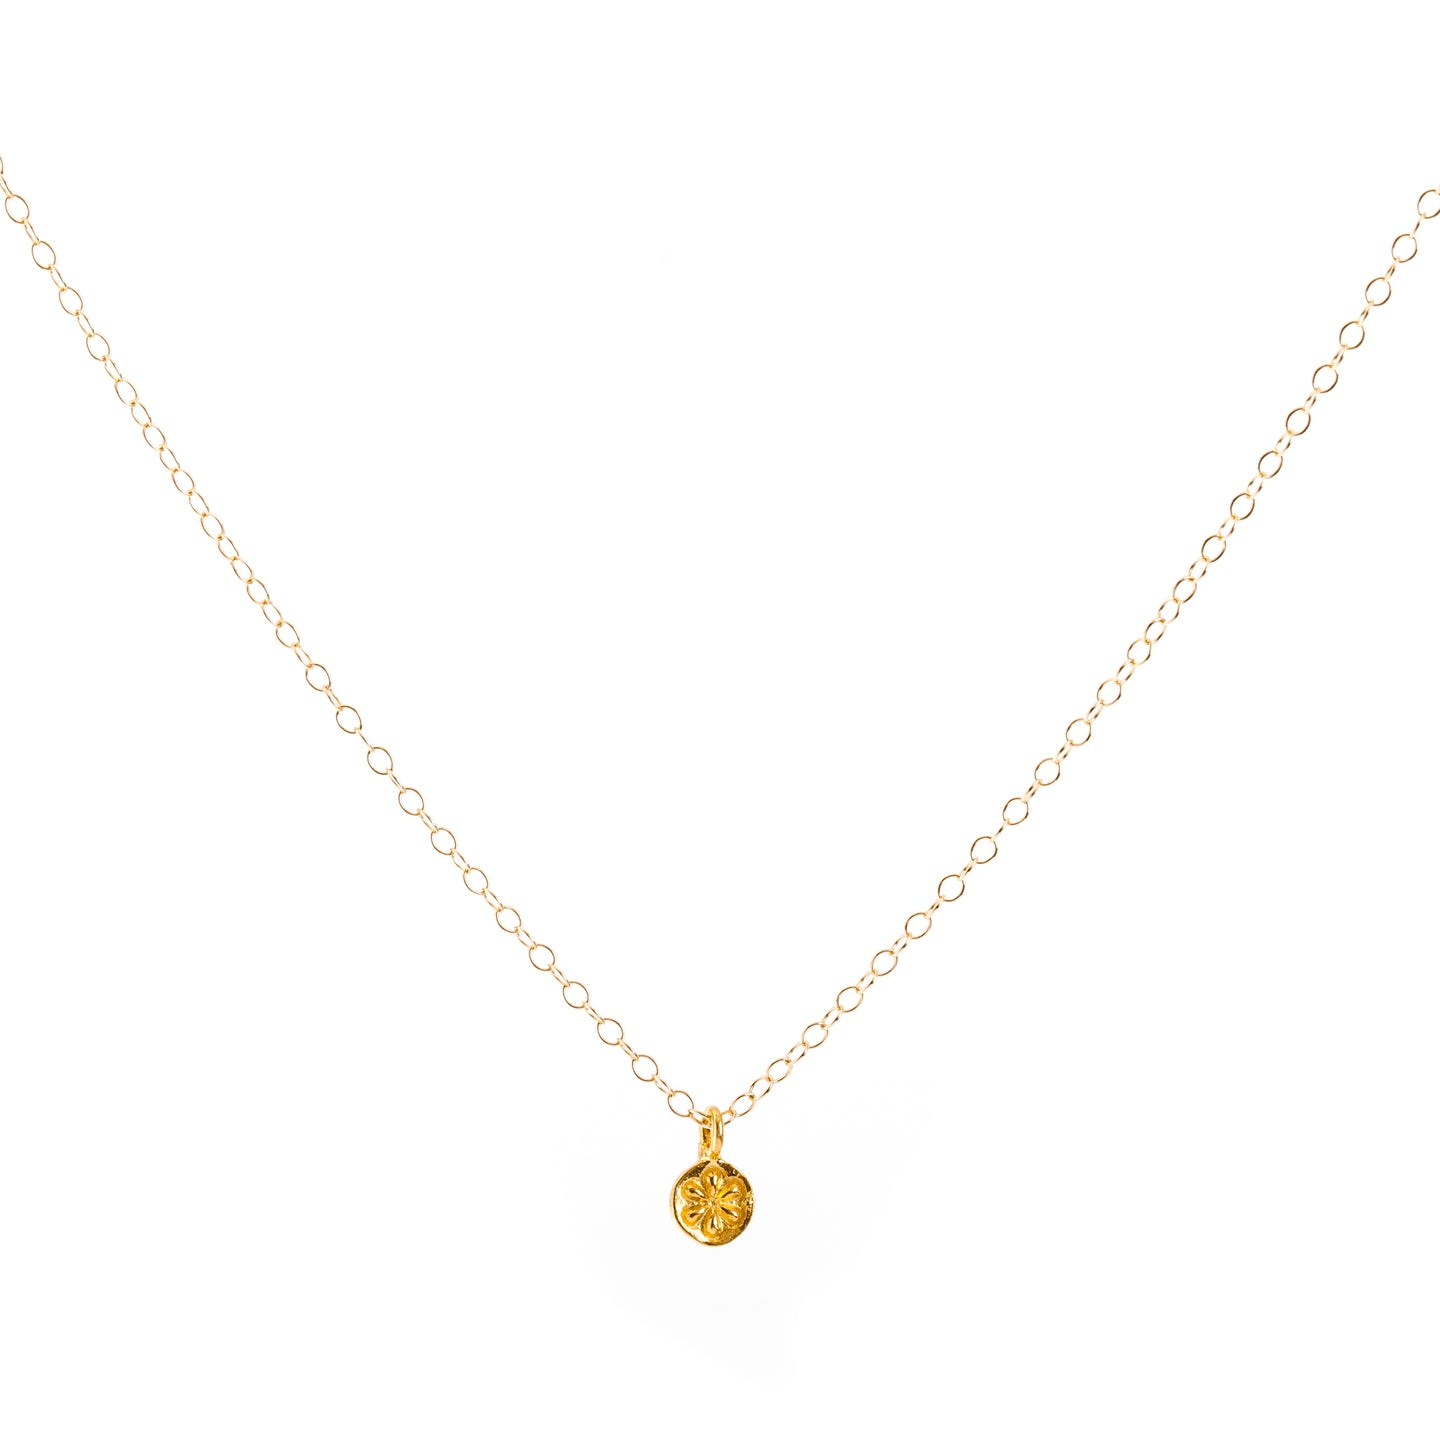 Minimal Gold Daisy Flower Necklace